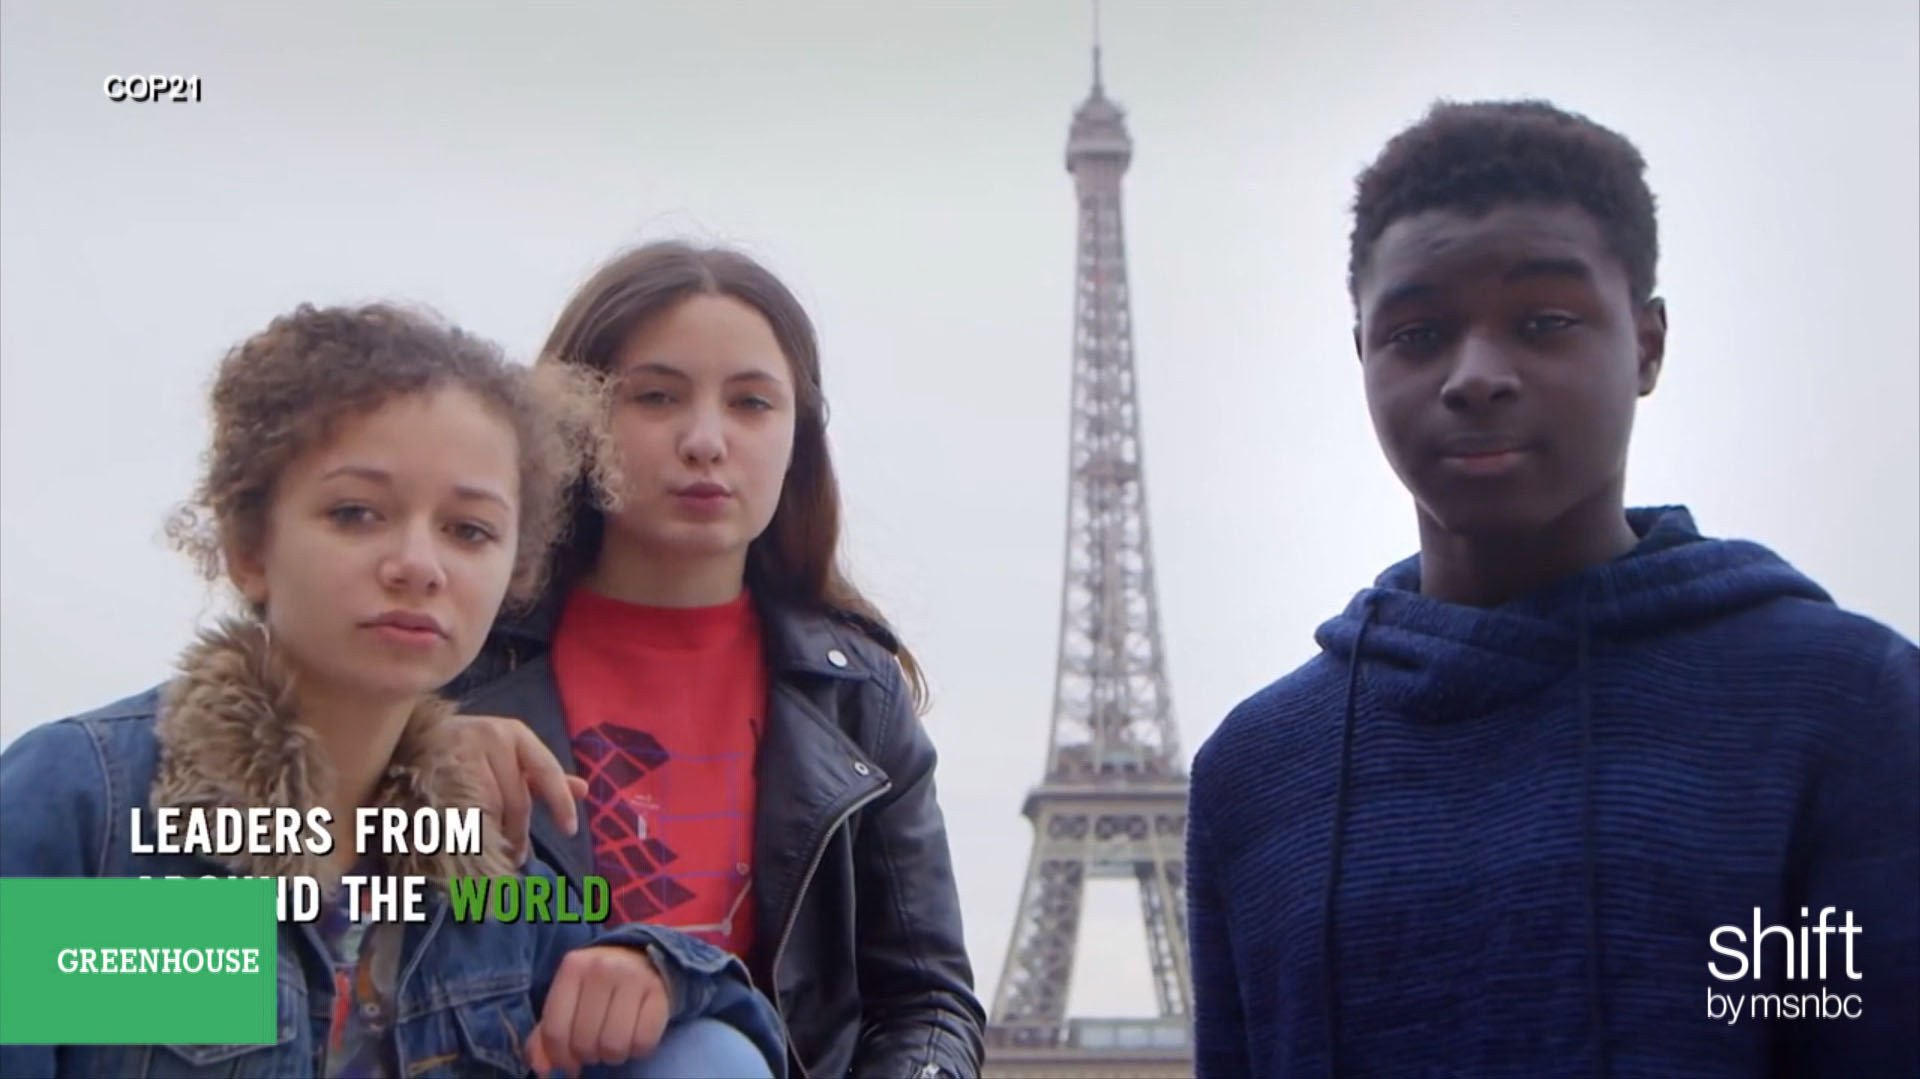 One month away from COP21